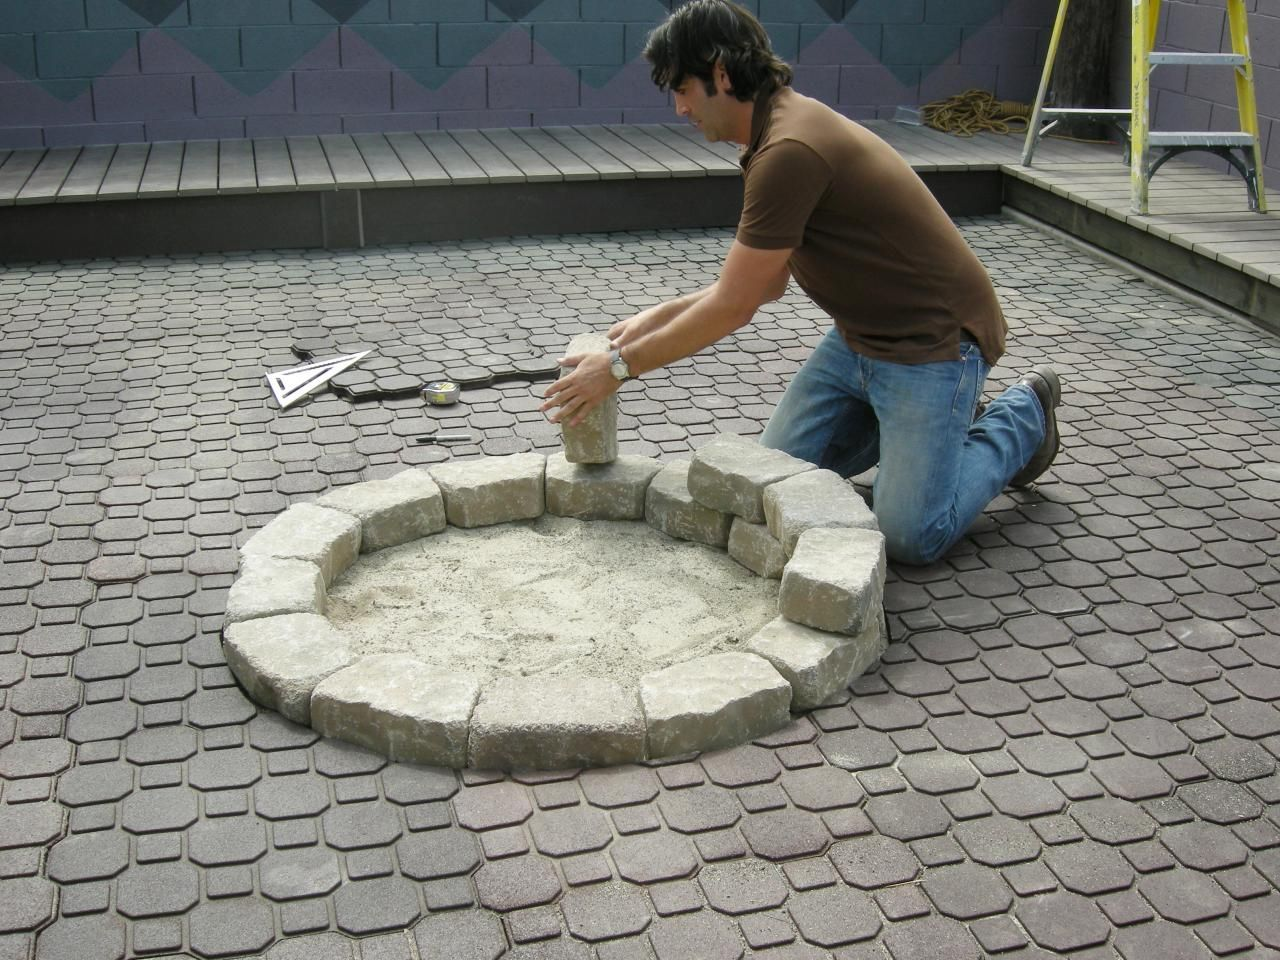 Stone fire pit designs patio traditional with artistic hardscape - How To Make A Backyard Fire Pit